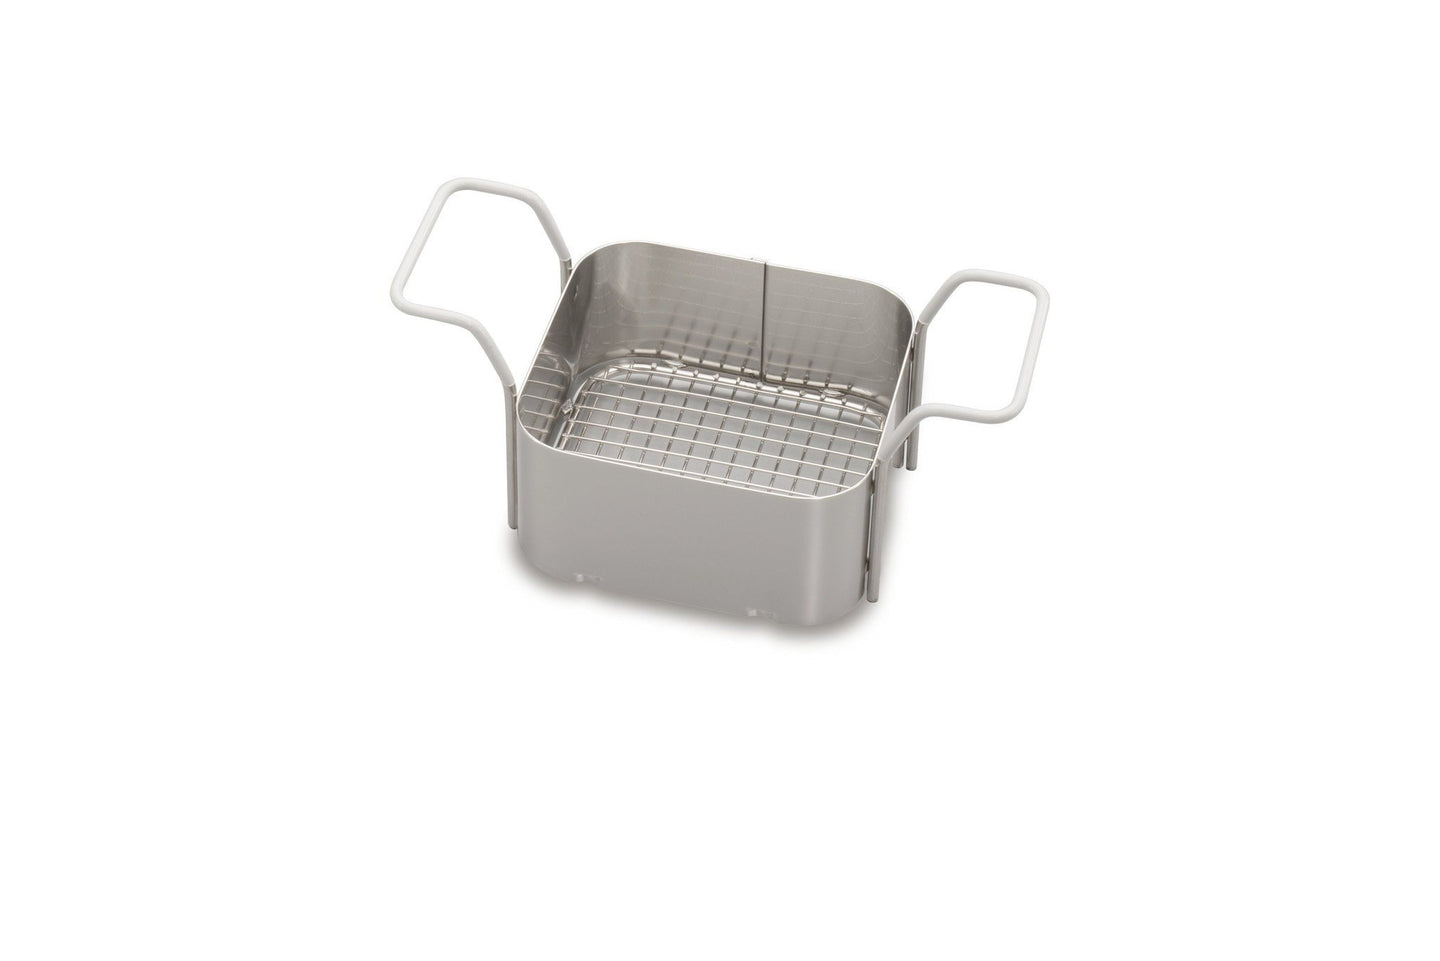 Elmasonic Stainless Steel Immersion Basket 15 & 20 - leadsonics